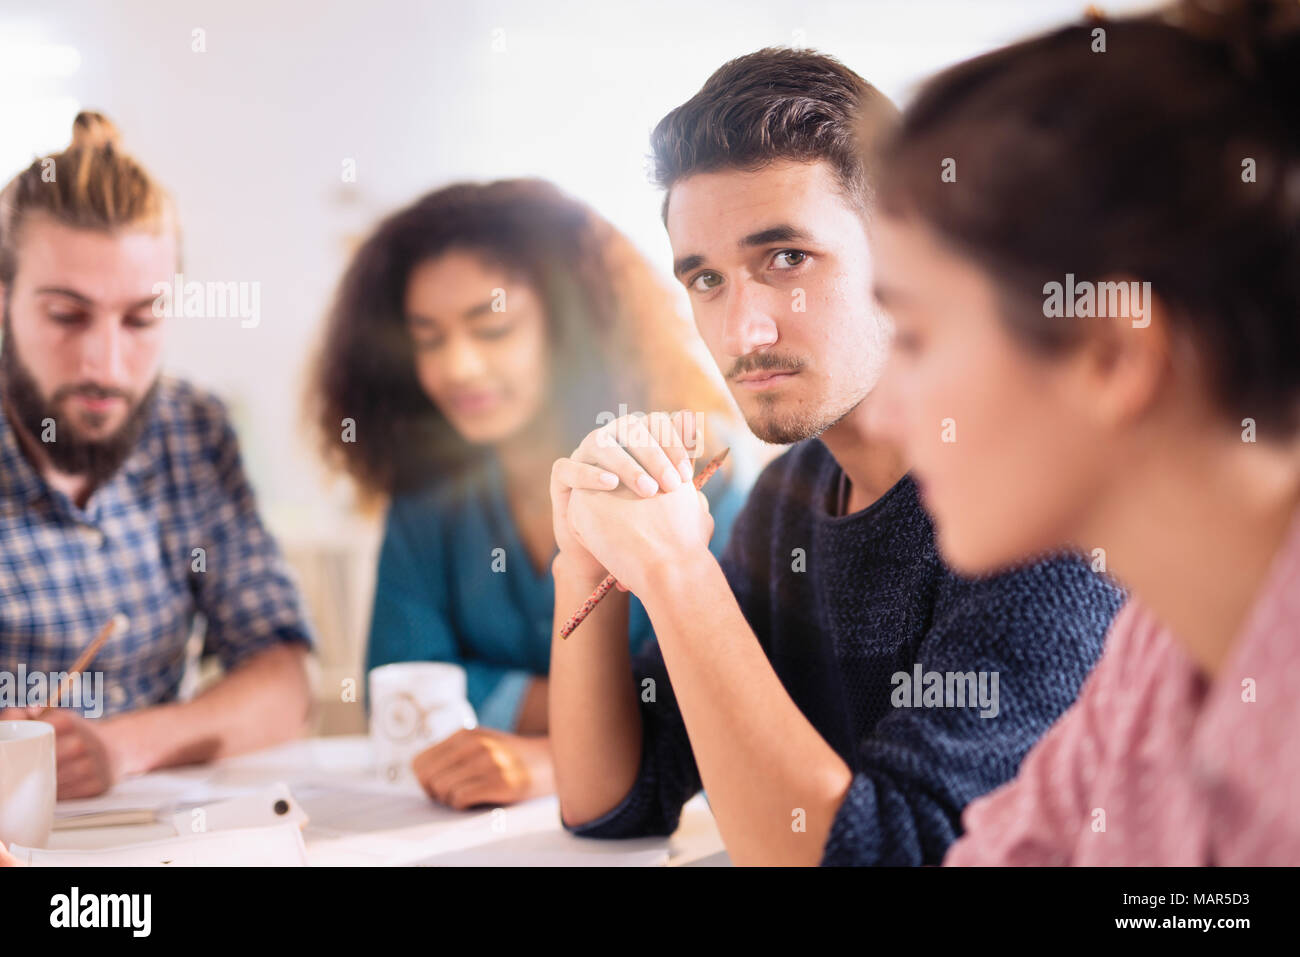 young man looking at the camera during a work meet - Stock Image